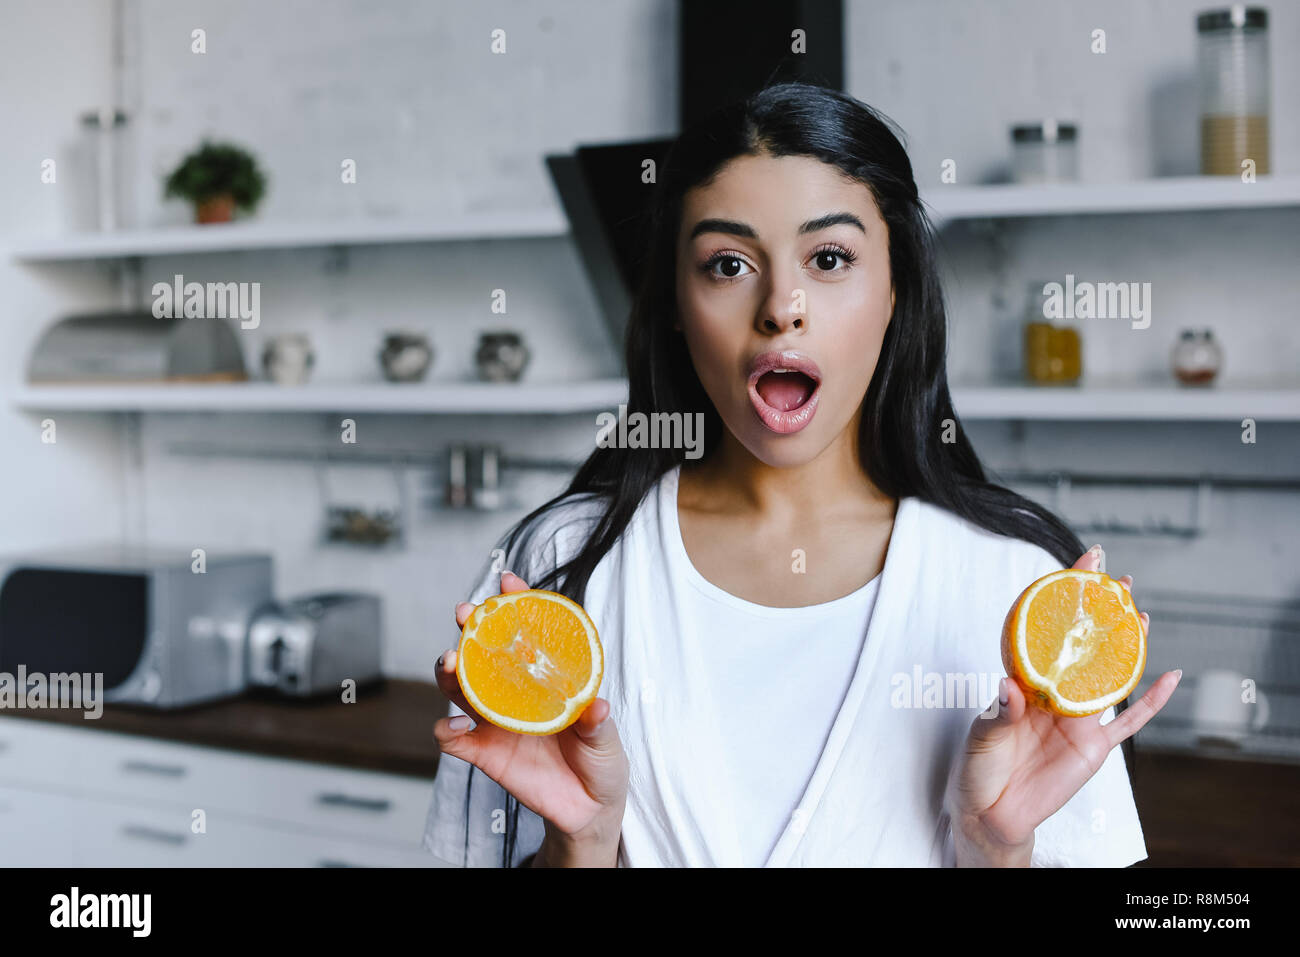 shocked mixed race girl in white robe holding cut orange and looking at camera in morning in kitchen Stock Photo